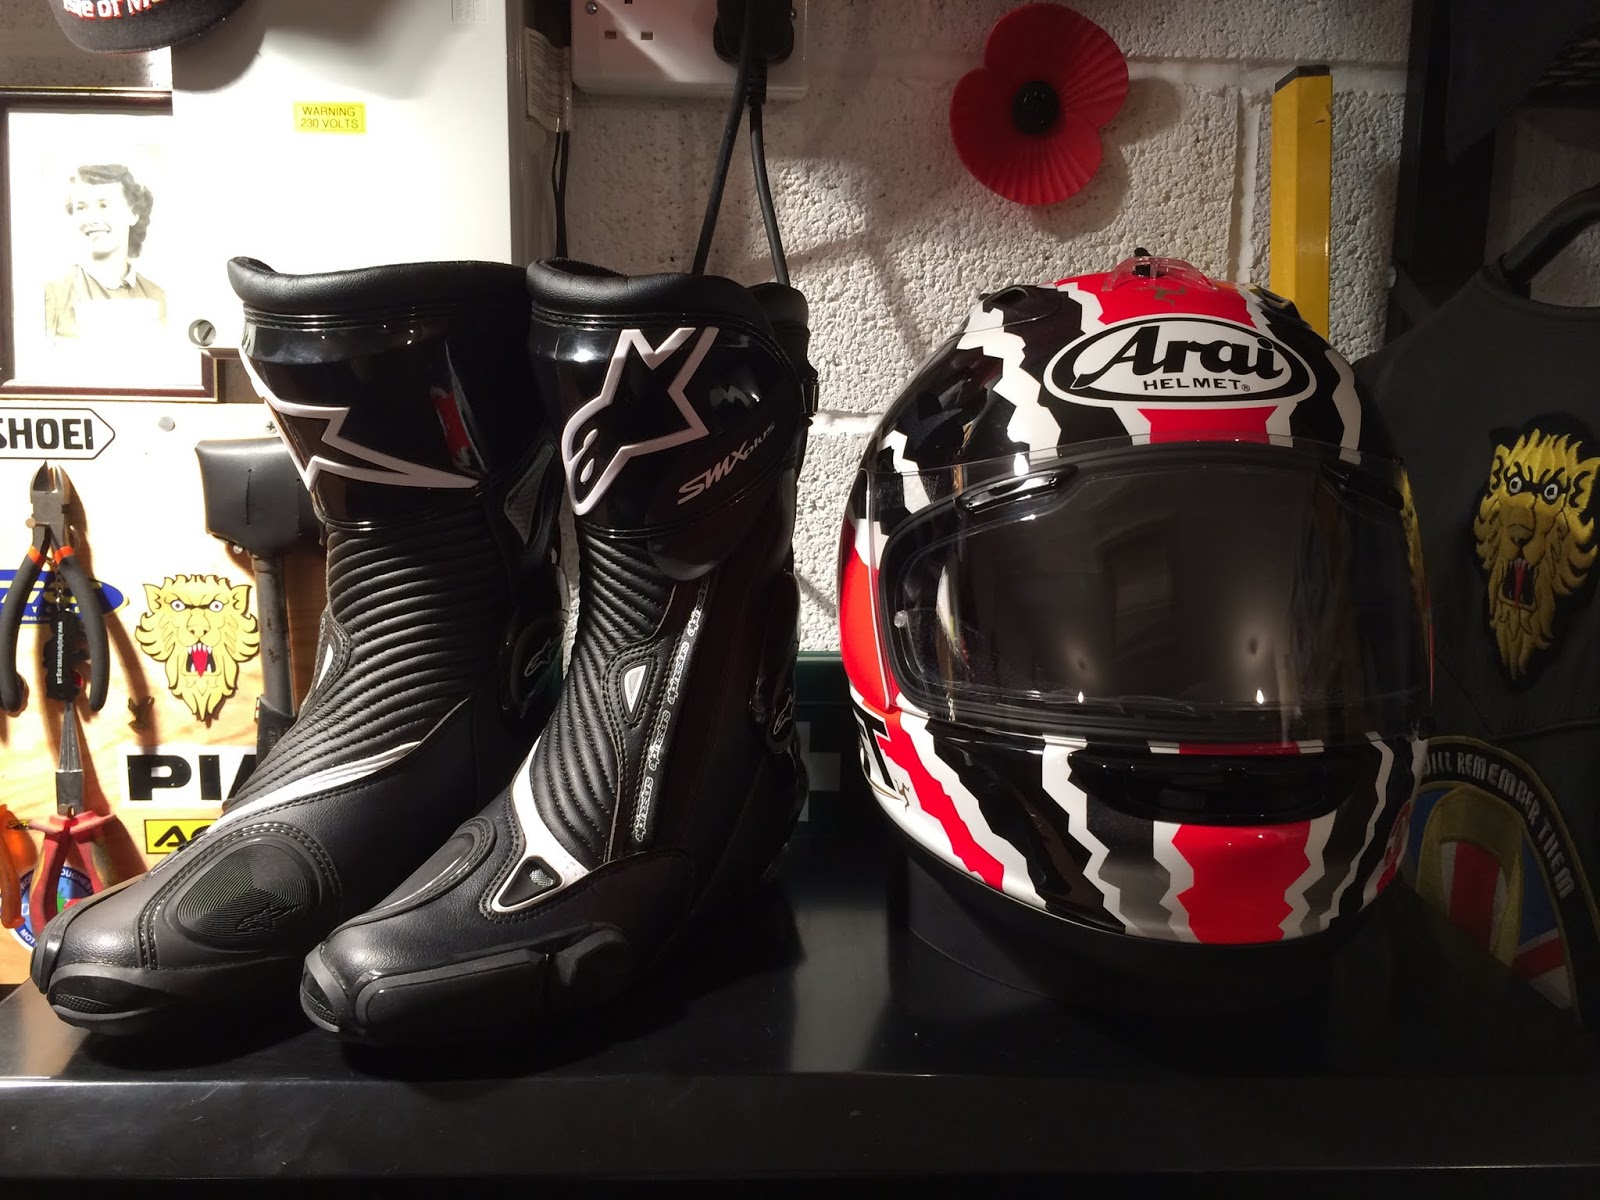 Boots and helmet